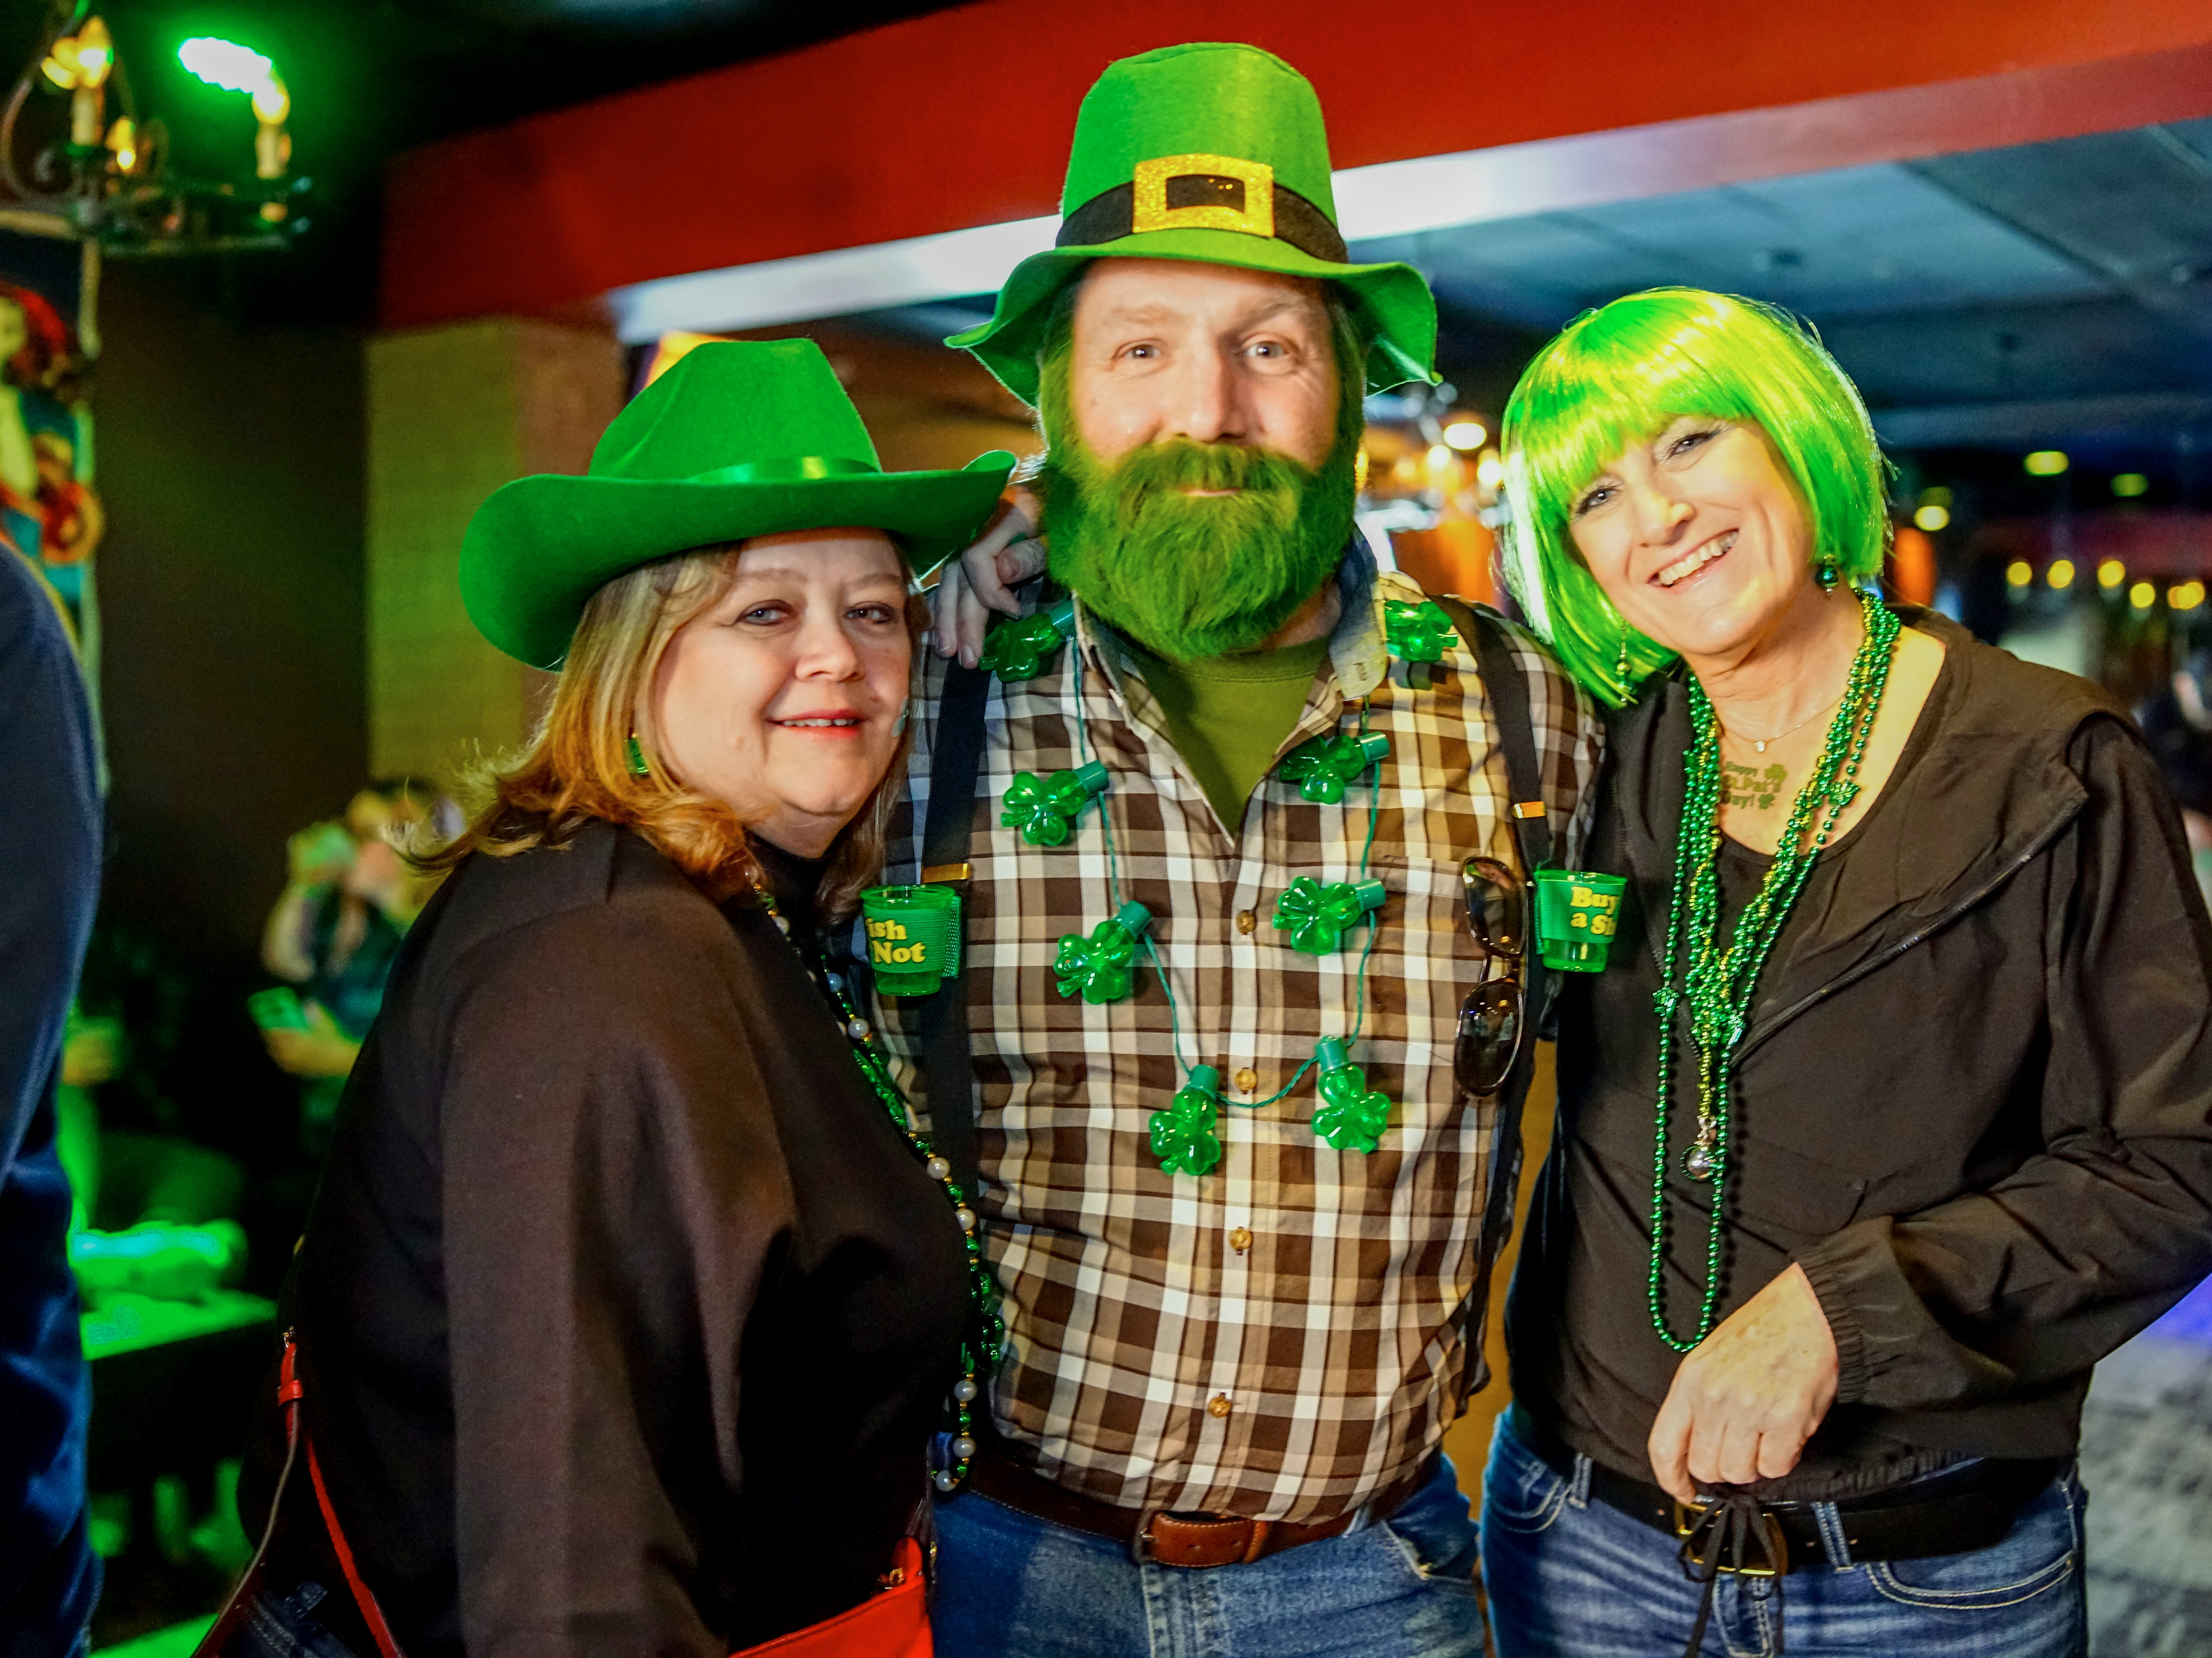 Stacy Stucki, 47, Jay Stucki, 41, and Diana Bershoof, 47, all of Des Moines, having a great time, Saturday, March 16, 2019, at Voodoo Lounge.